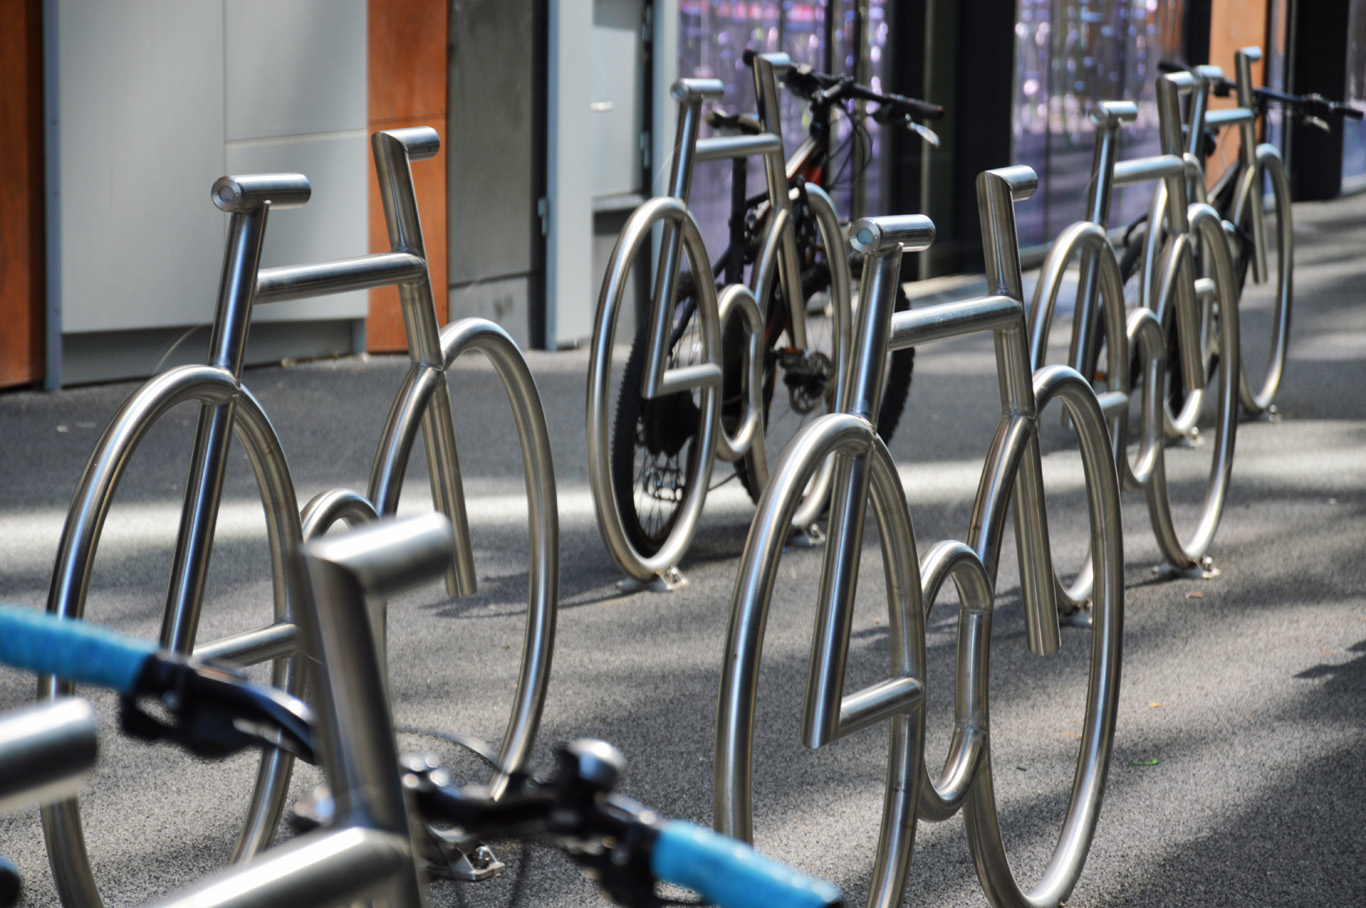 Original bike racks